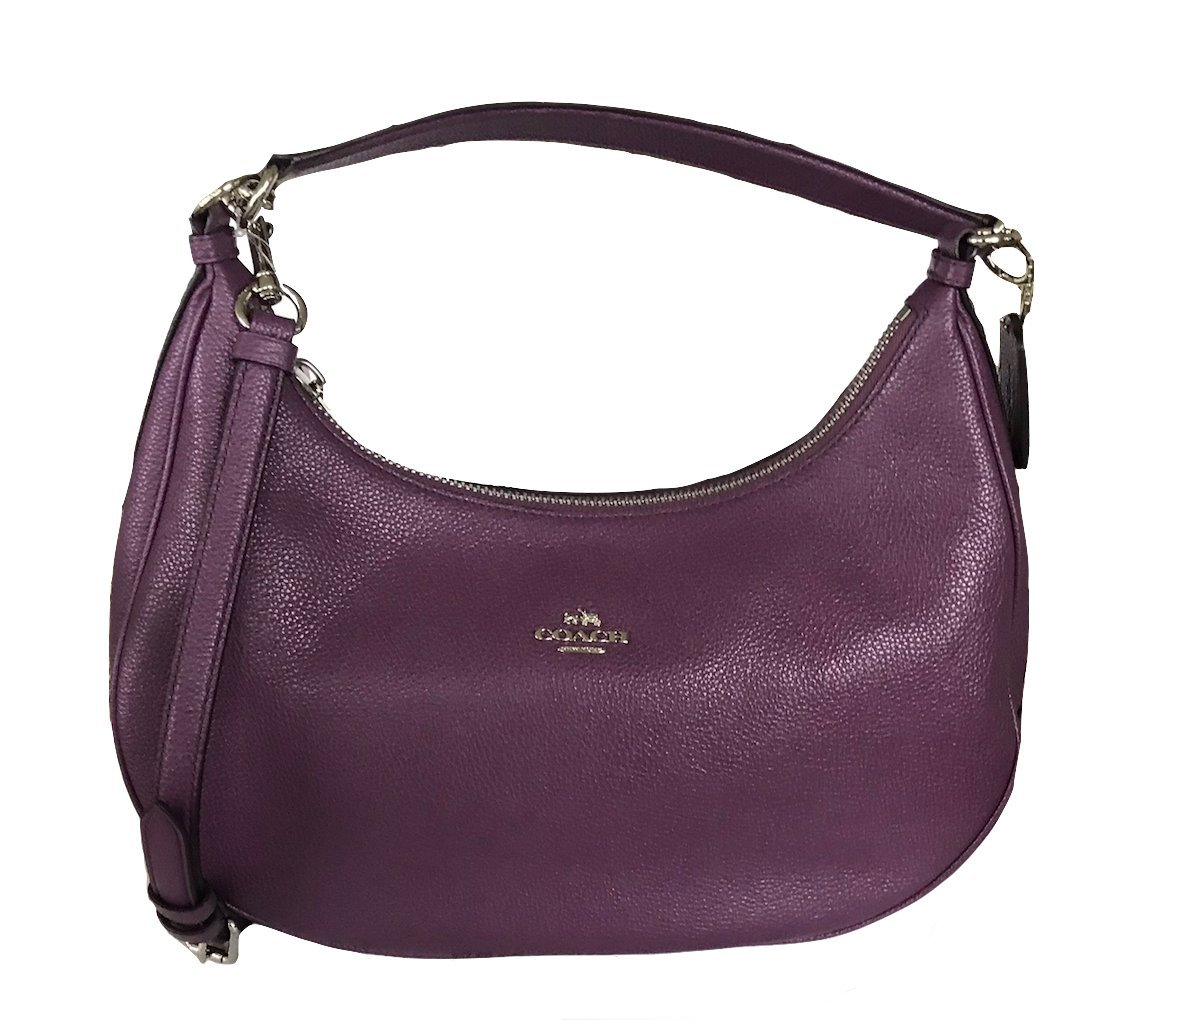 Coach Pebble Leather Harley East West Hobo in Black, F38250 IMBLK (Berry)